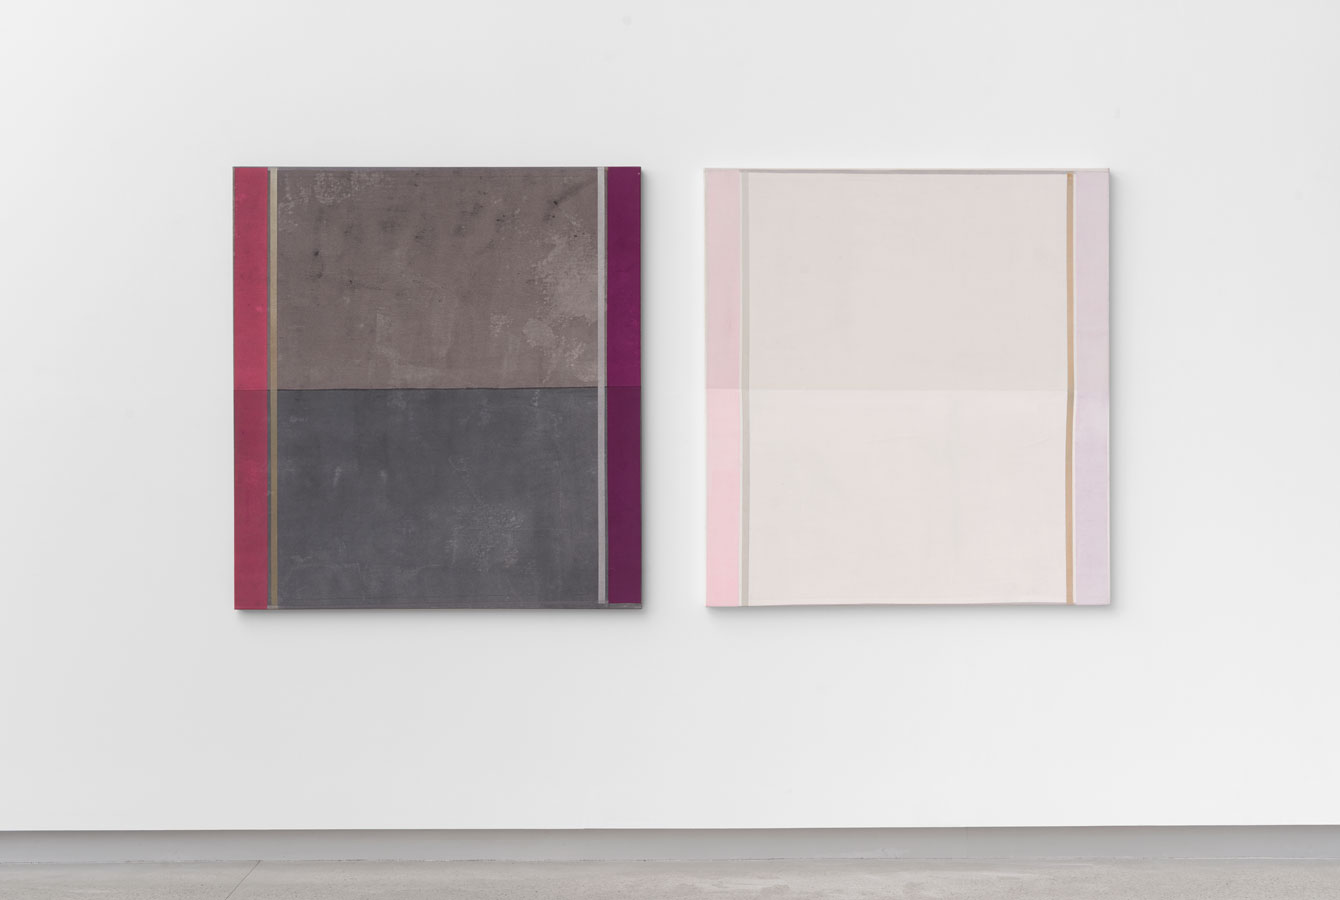 'Duo–Plexes' (diptych), 2015<br/>Acrylic staining, pigments, glitter, pencil and holographic paint on canvas<br/>137 x 126 x 5 cm each panel